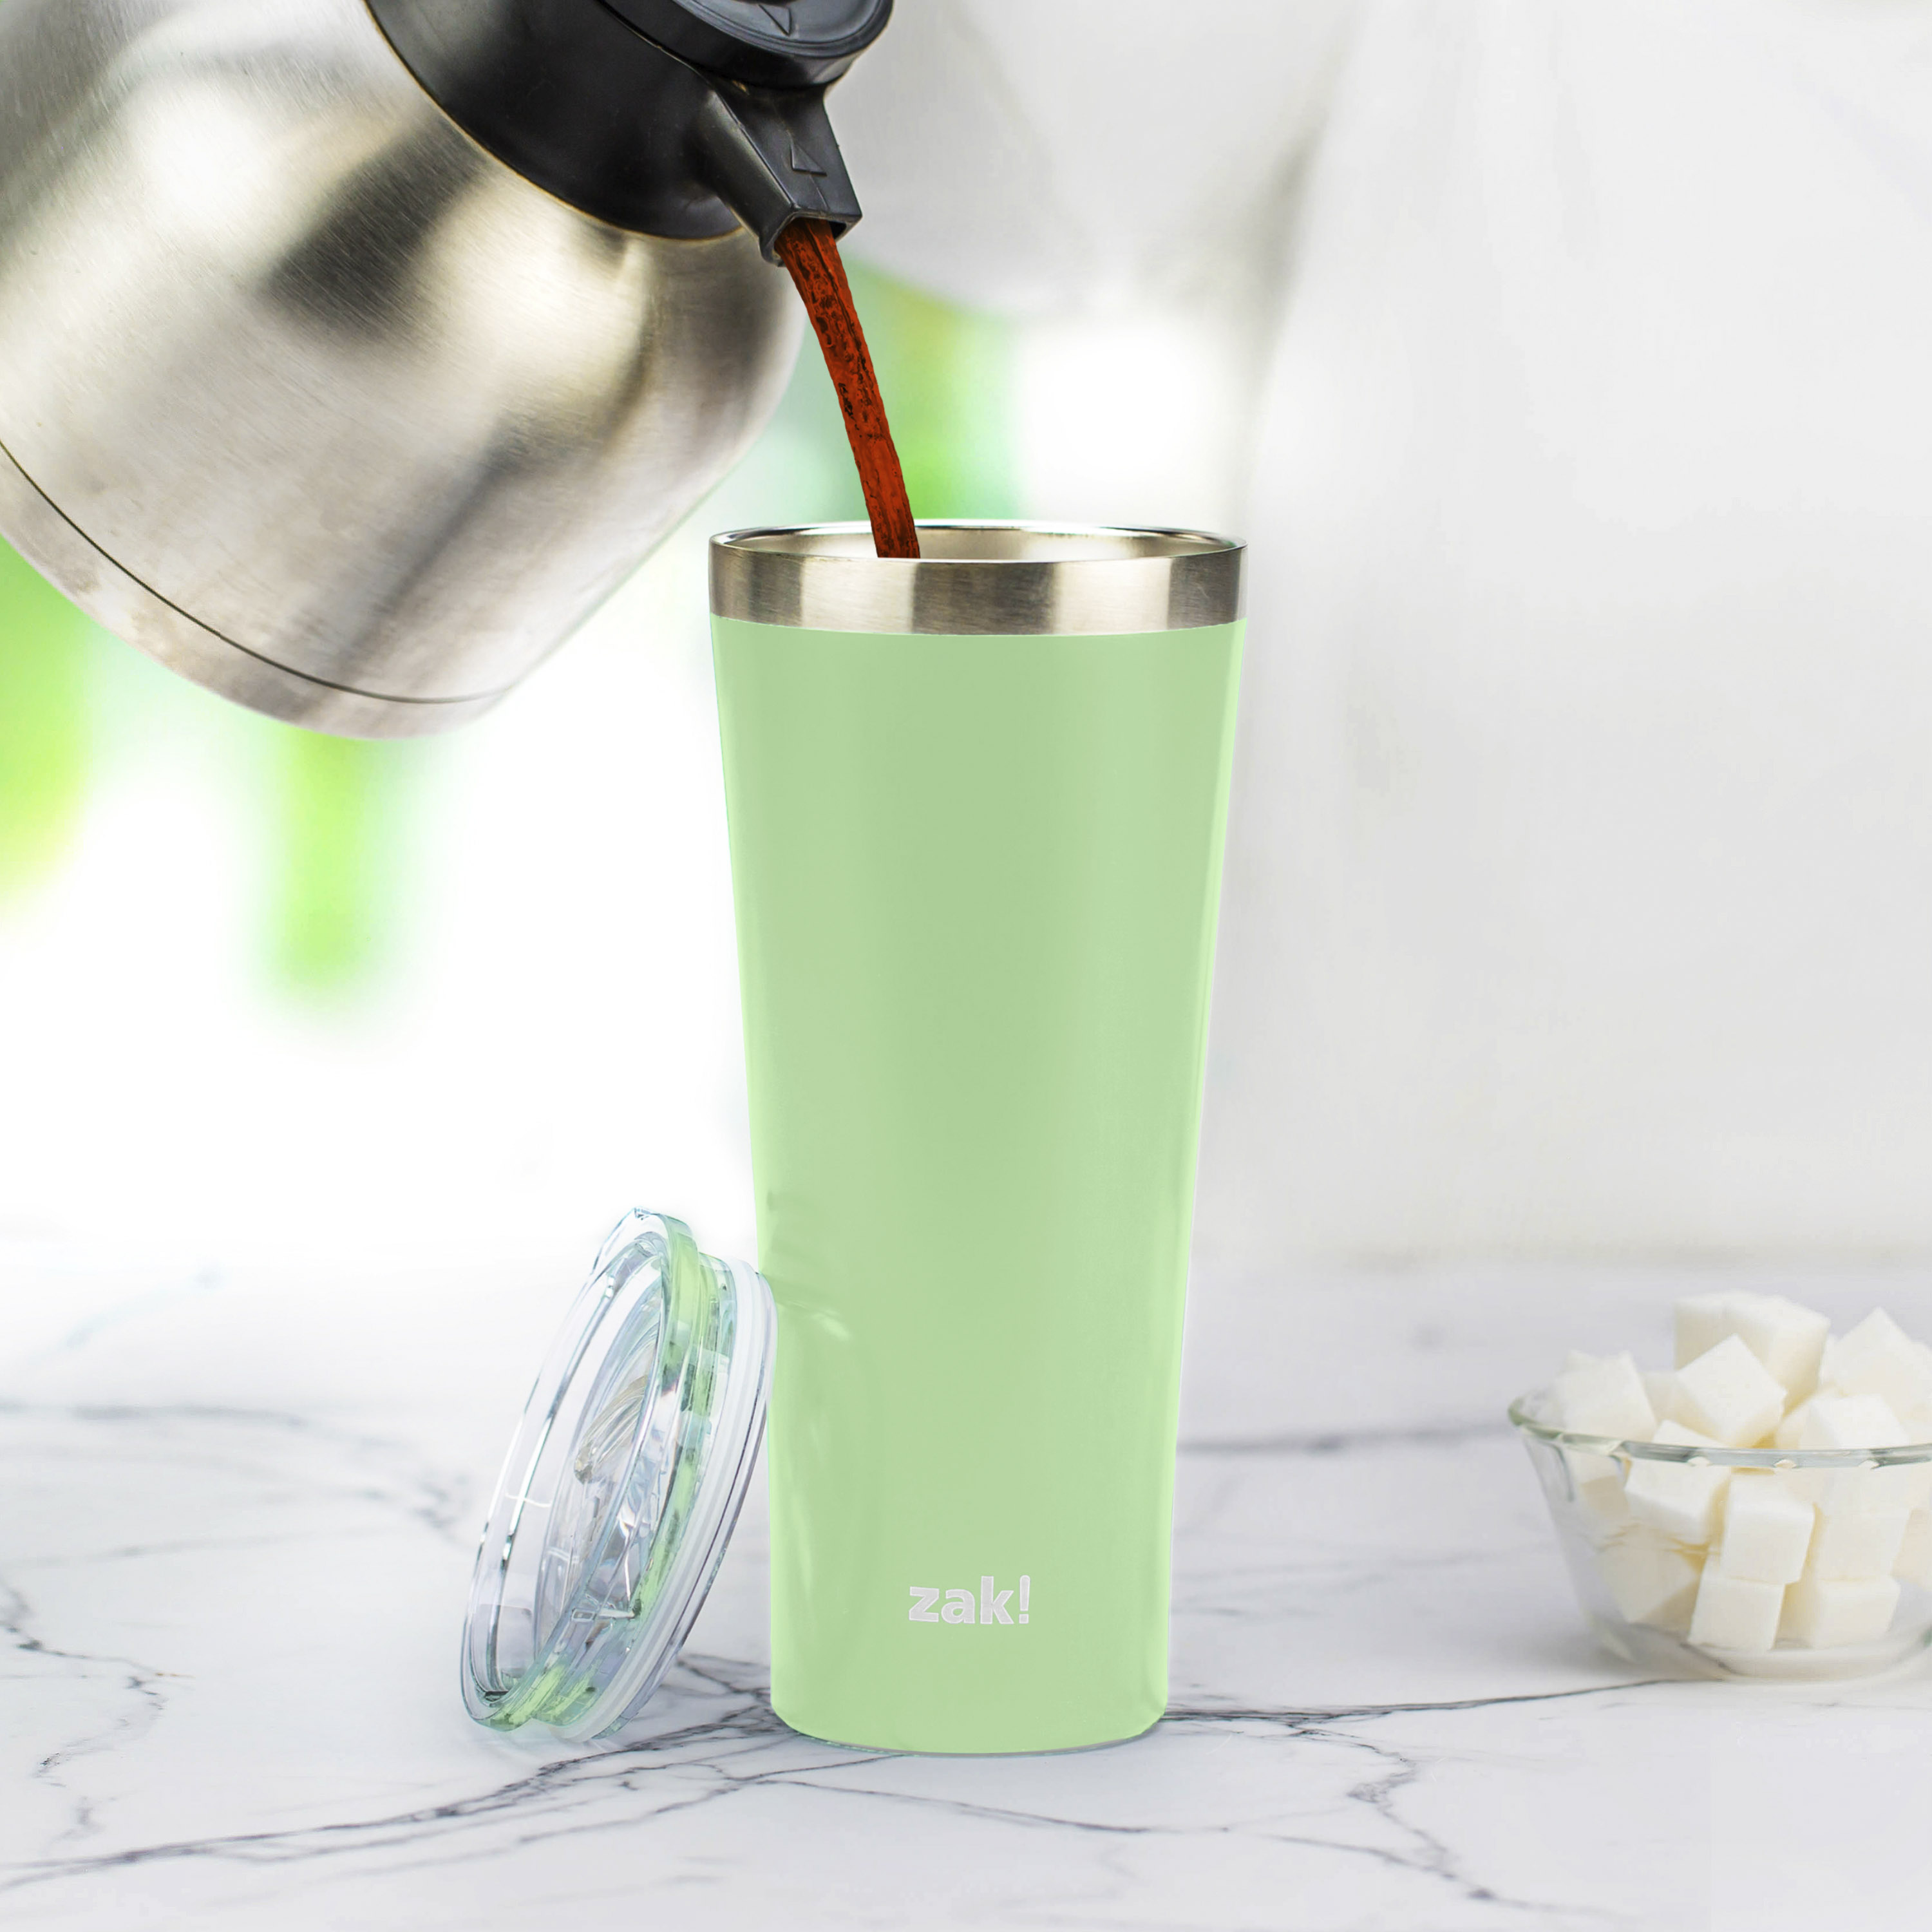 Alpine 30 ounce Stainless Steel Vacuum Insulated Tumbler with Straw, Neo Mint slideshow image 10